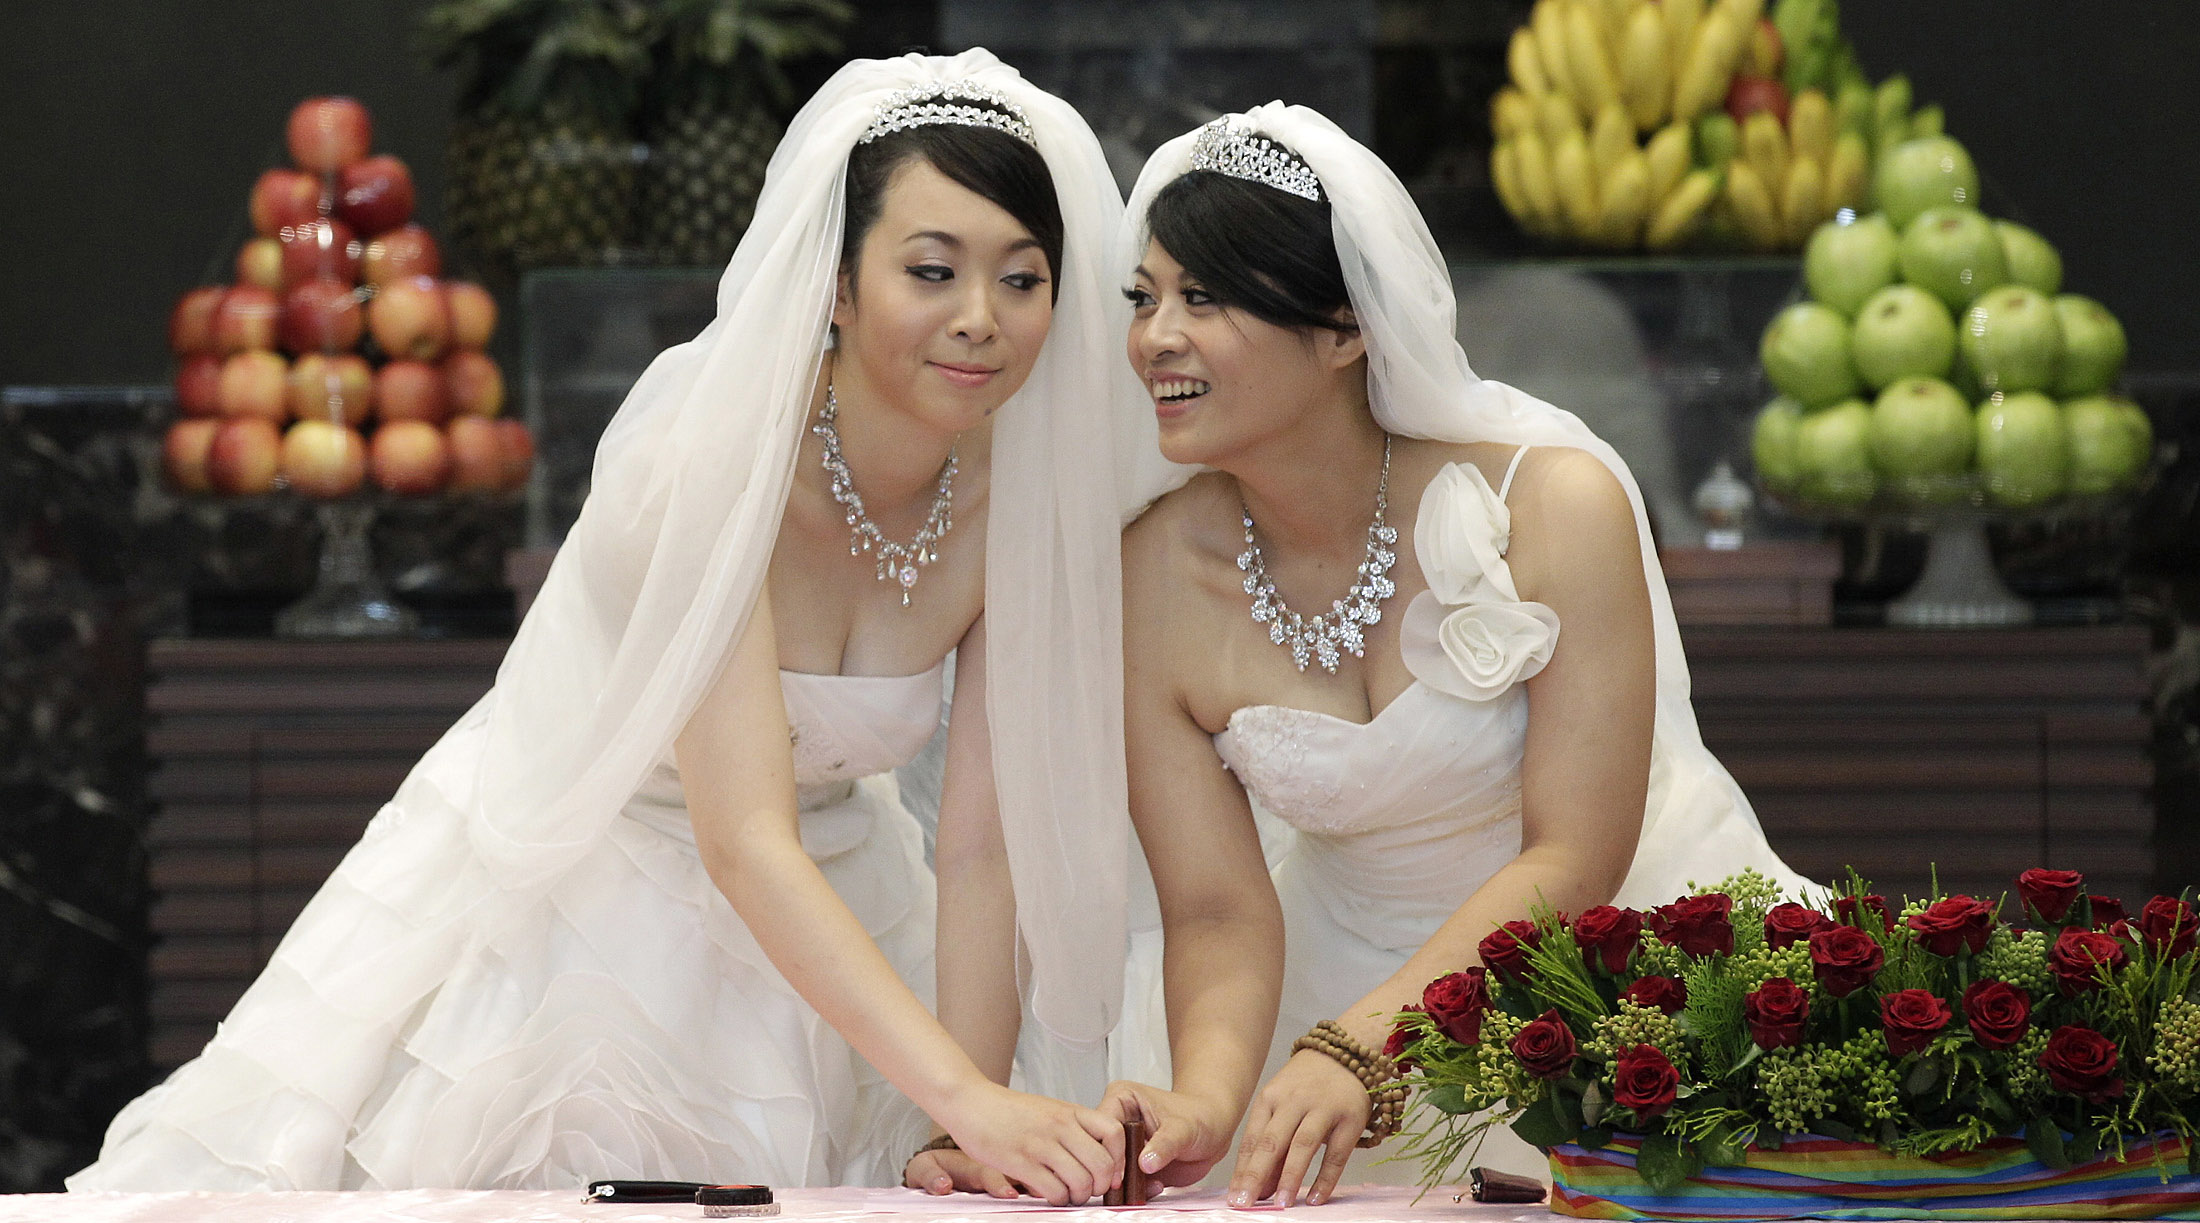 You Ya-ting, left, and Huang Mei-yu cast their stamps during their symbolic same-sex Buddhist wedding ceremony at a temple in Taoyuan county, northern Taiwan, on Aug. 11, 2012.